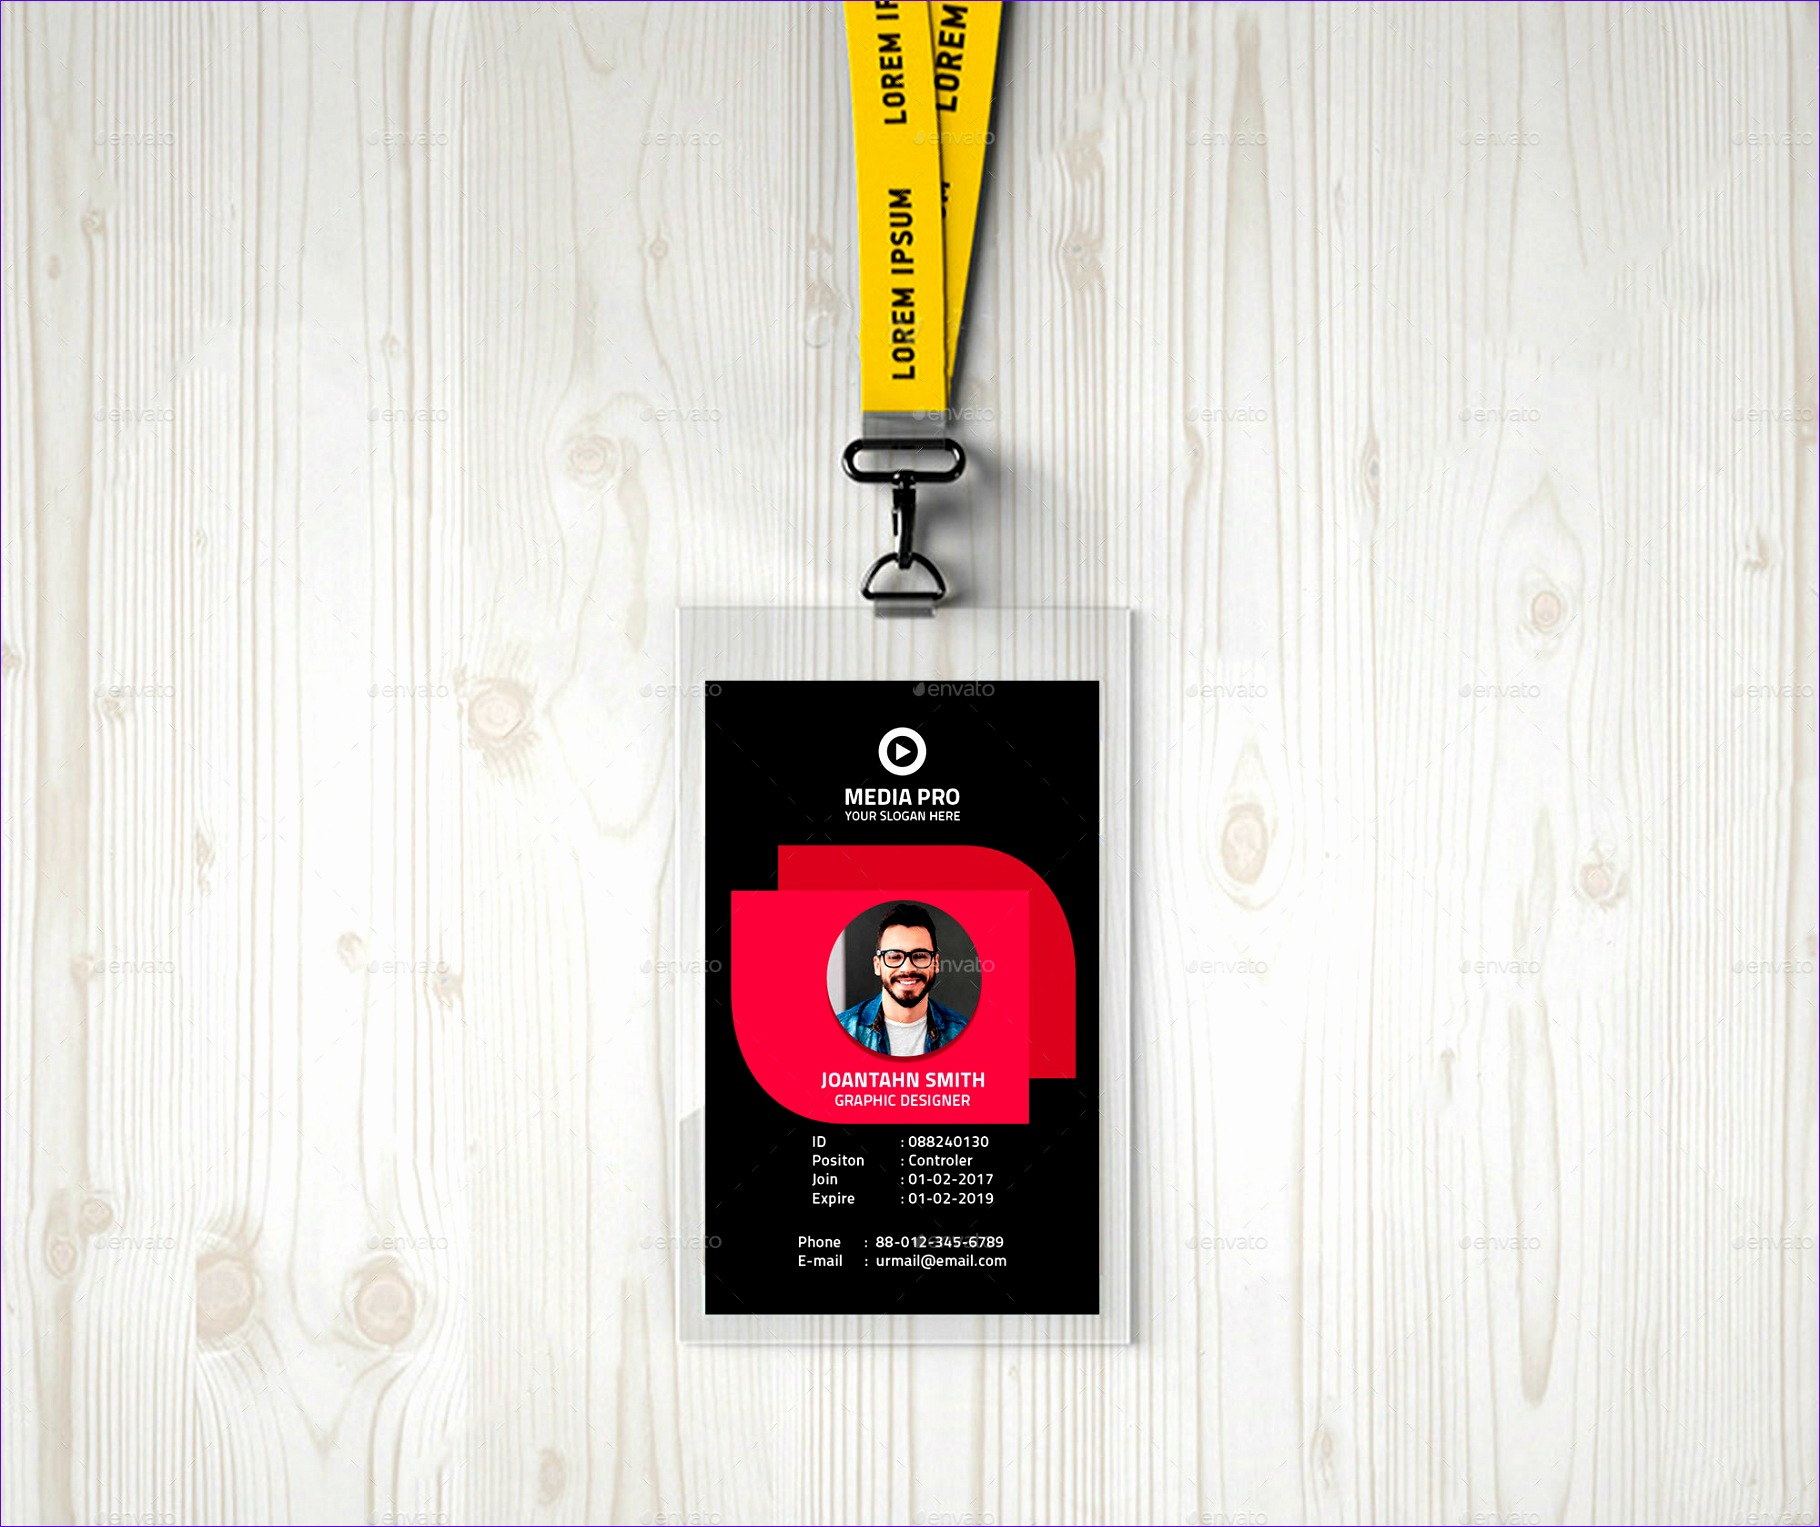 12 Employee S Photo Id Badges Template